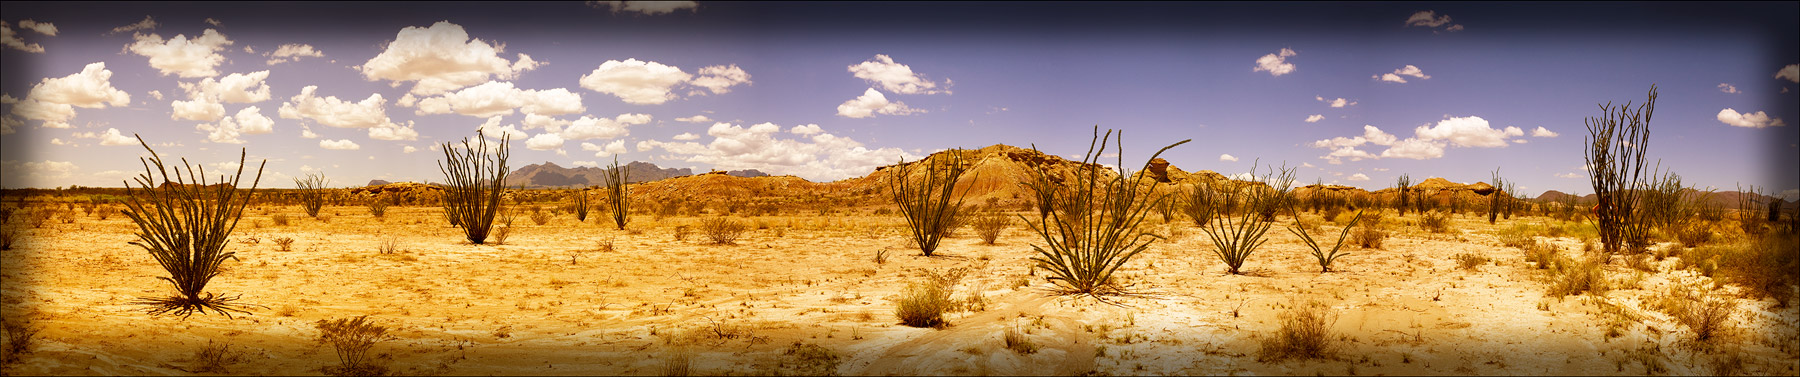 Ocotillo-Pamoramic_web